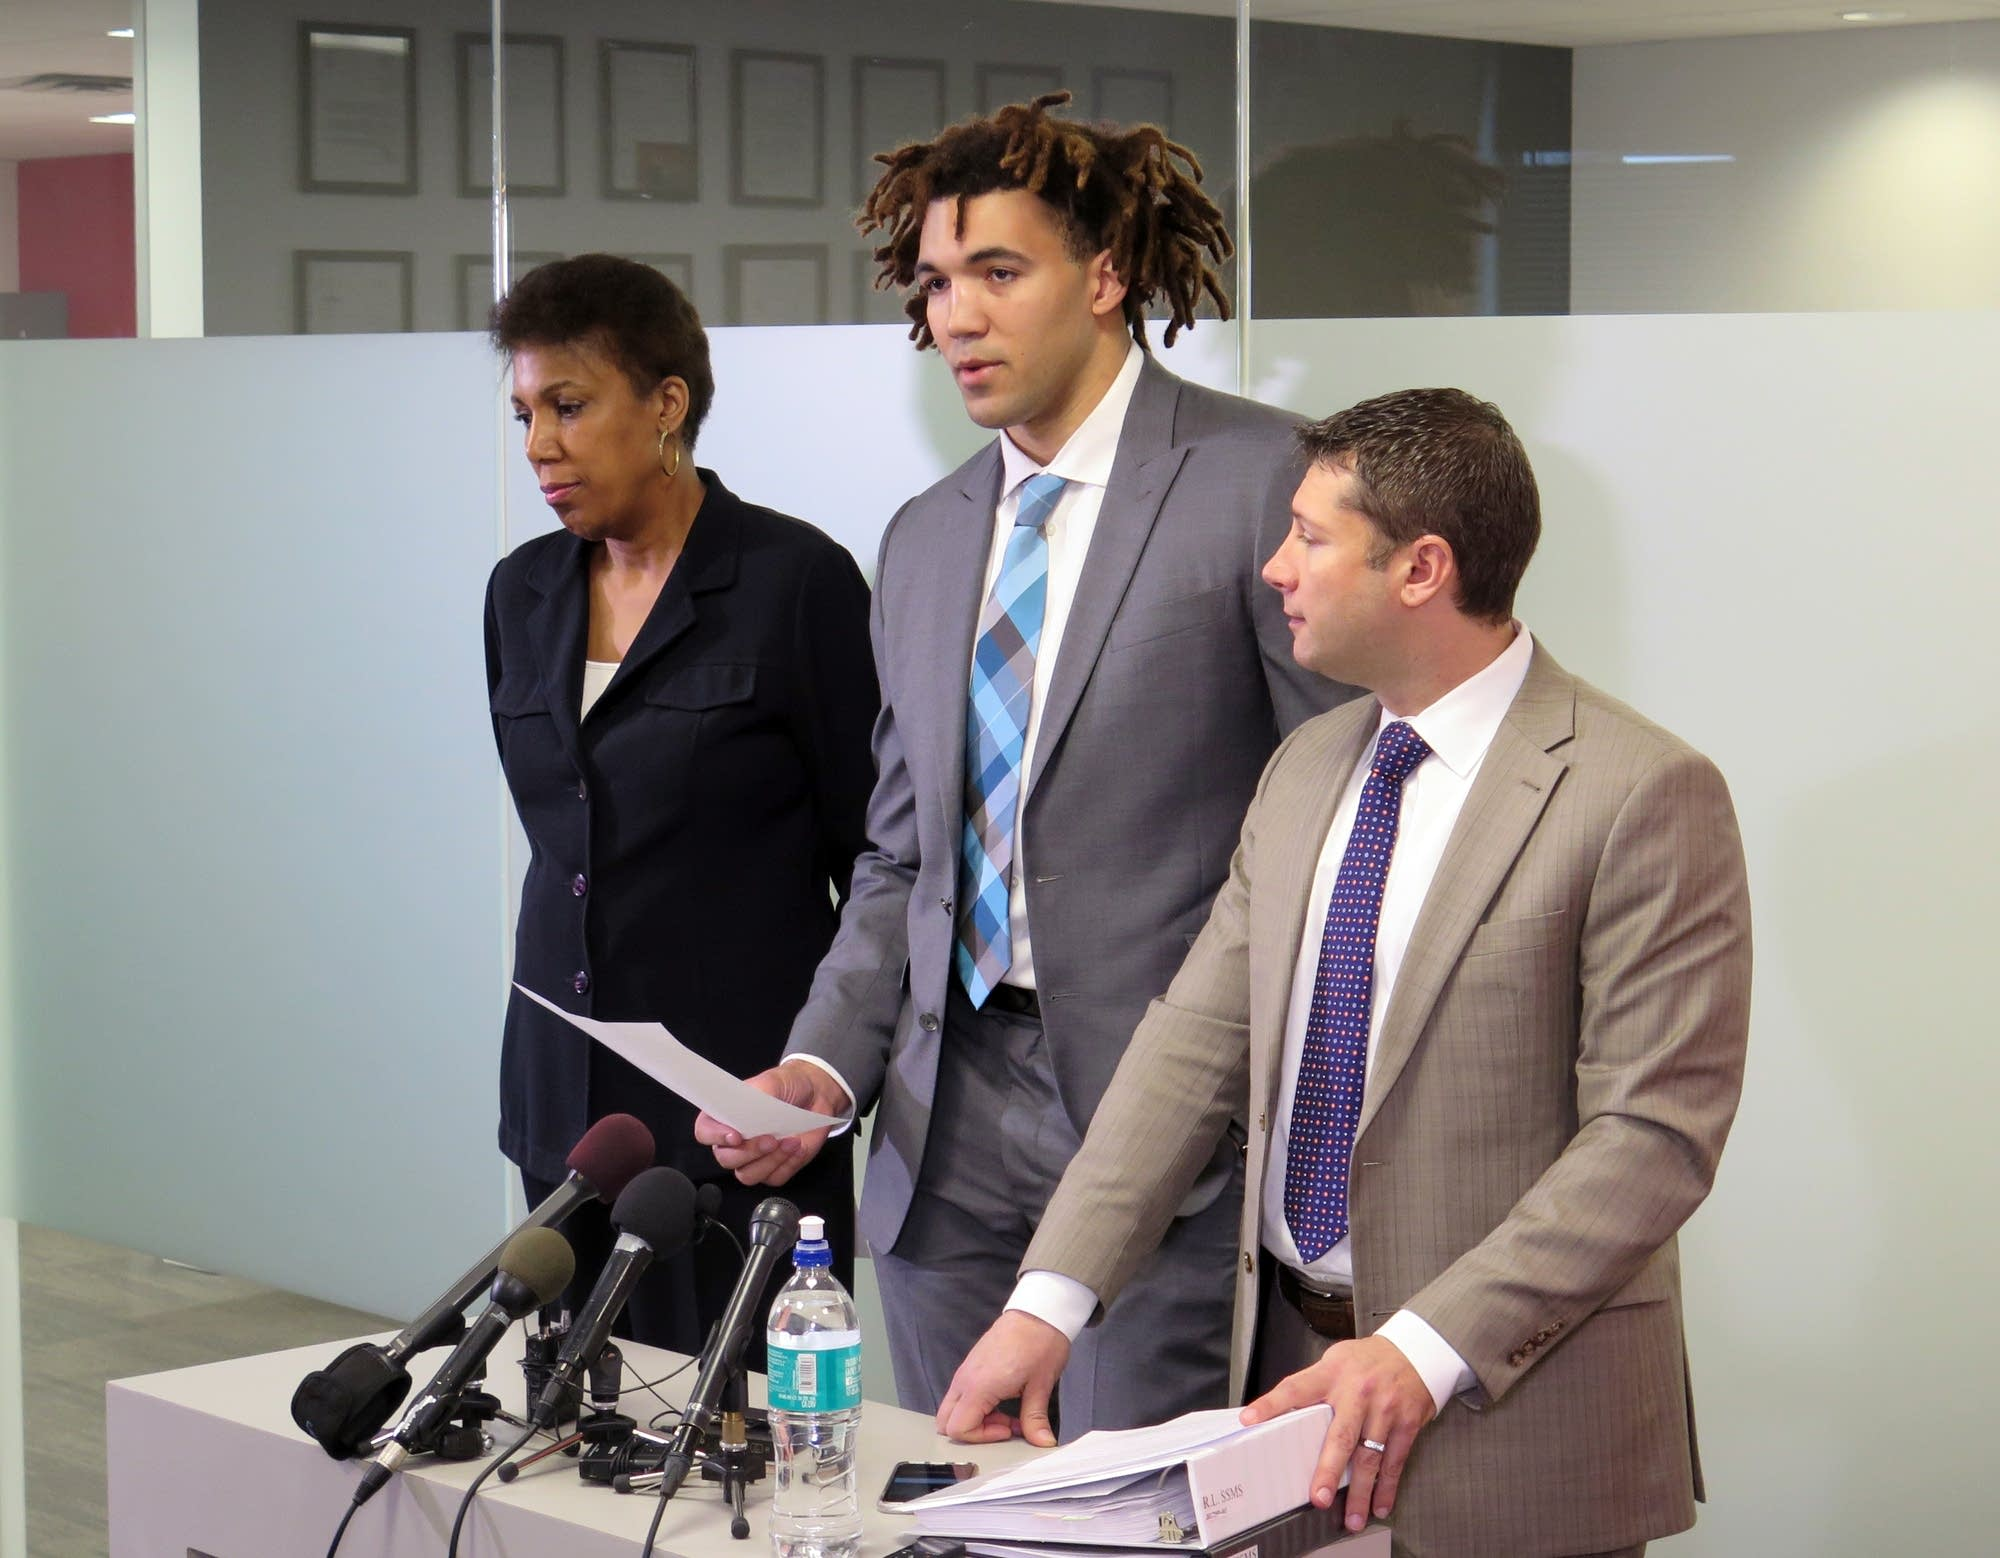 Reggie Lynch reads a statement at his attorney's office.